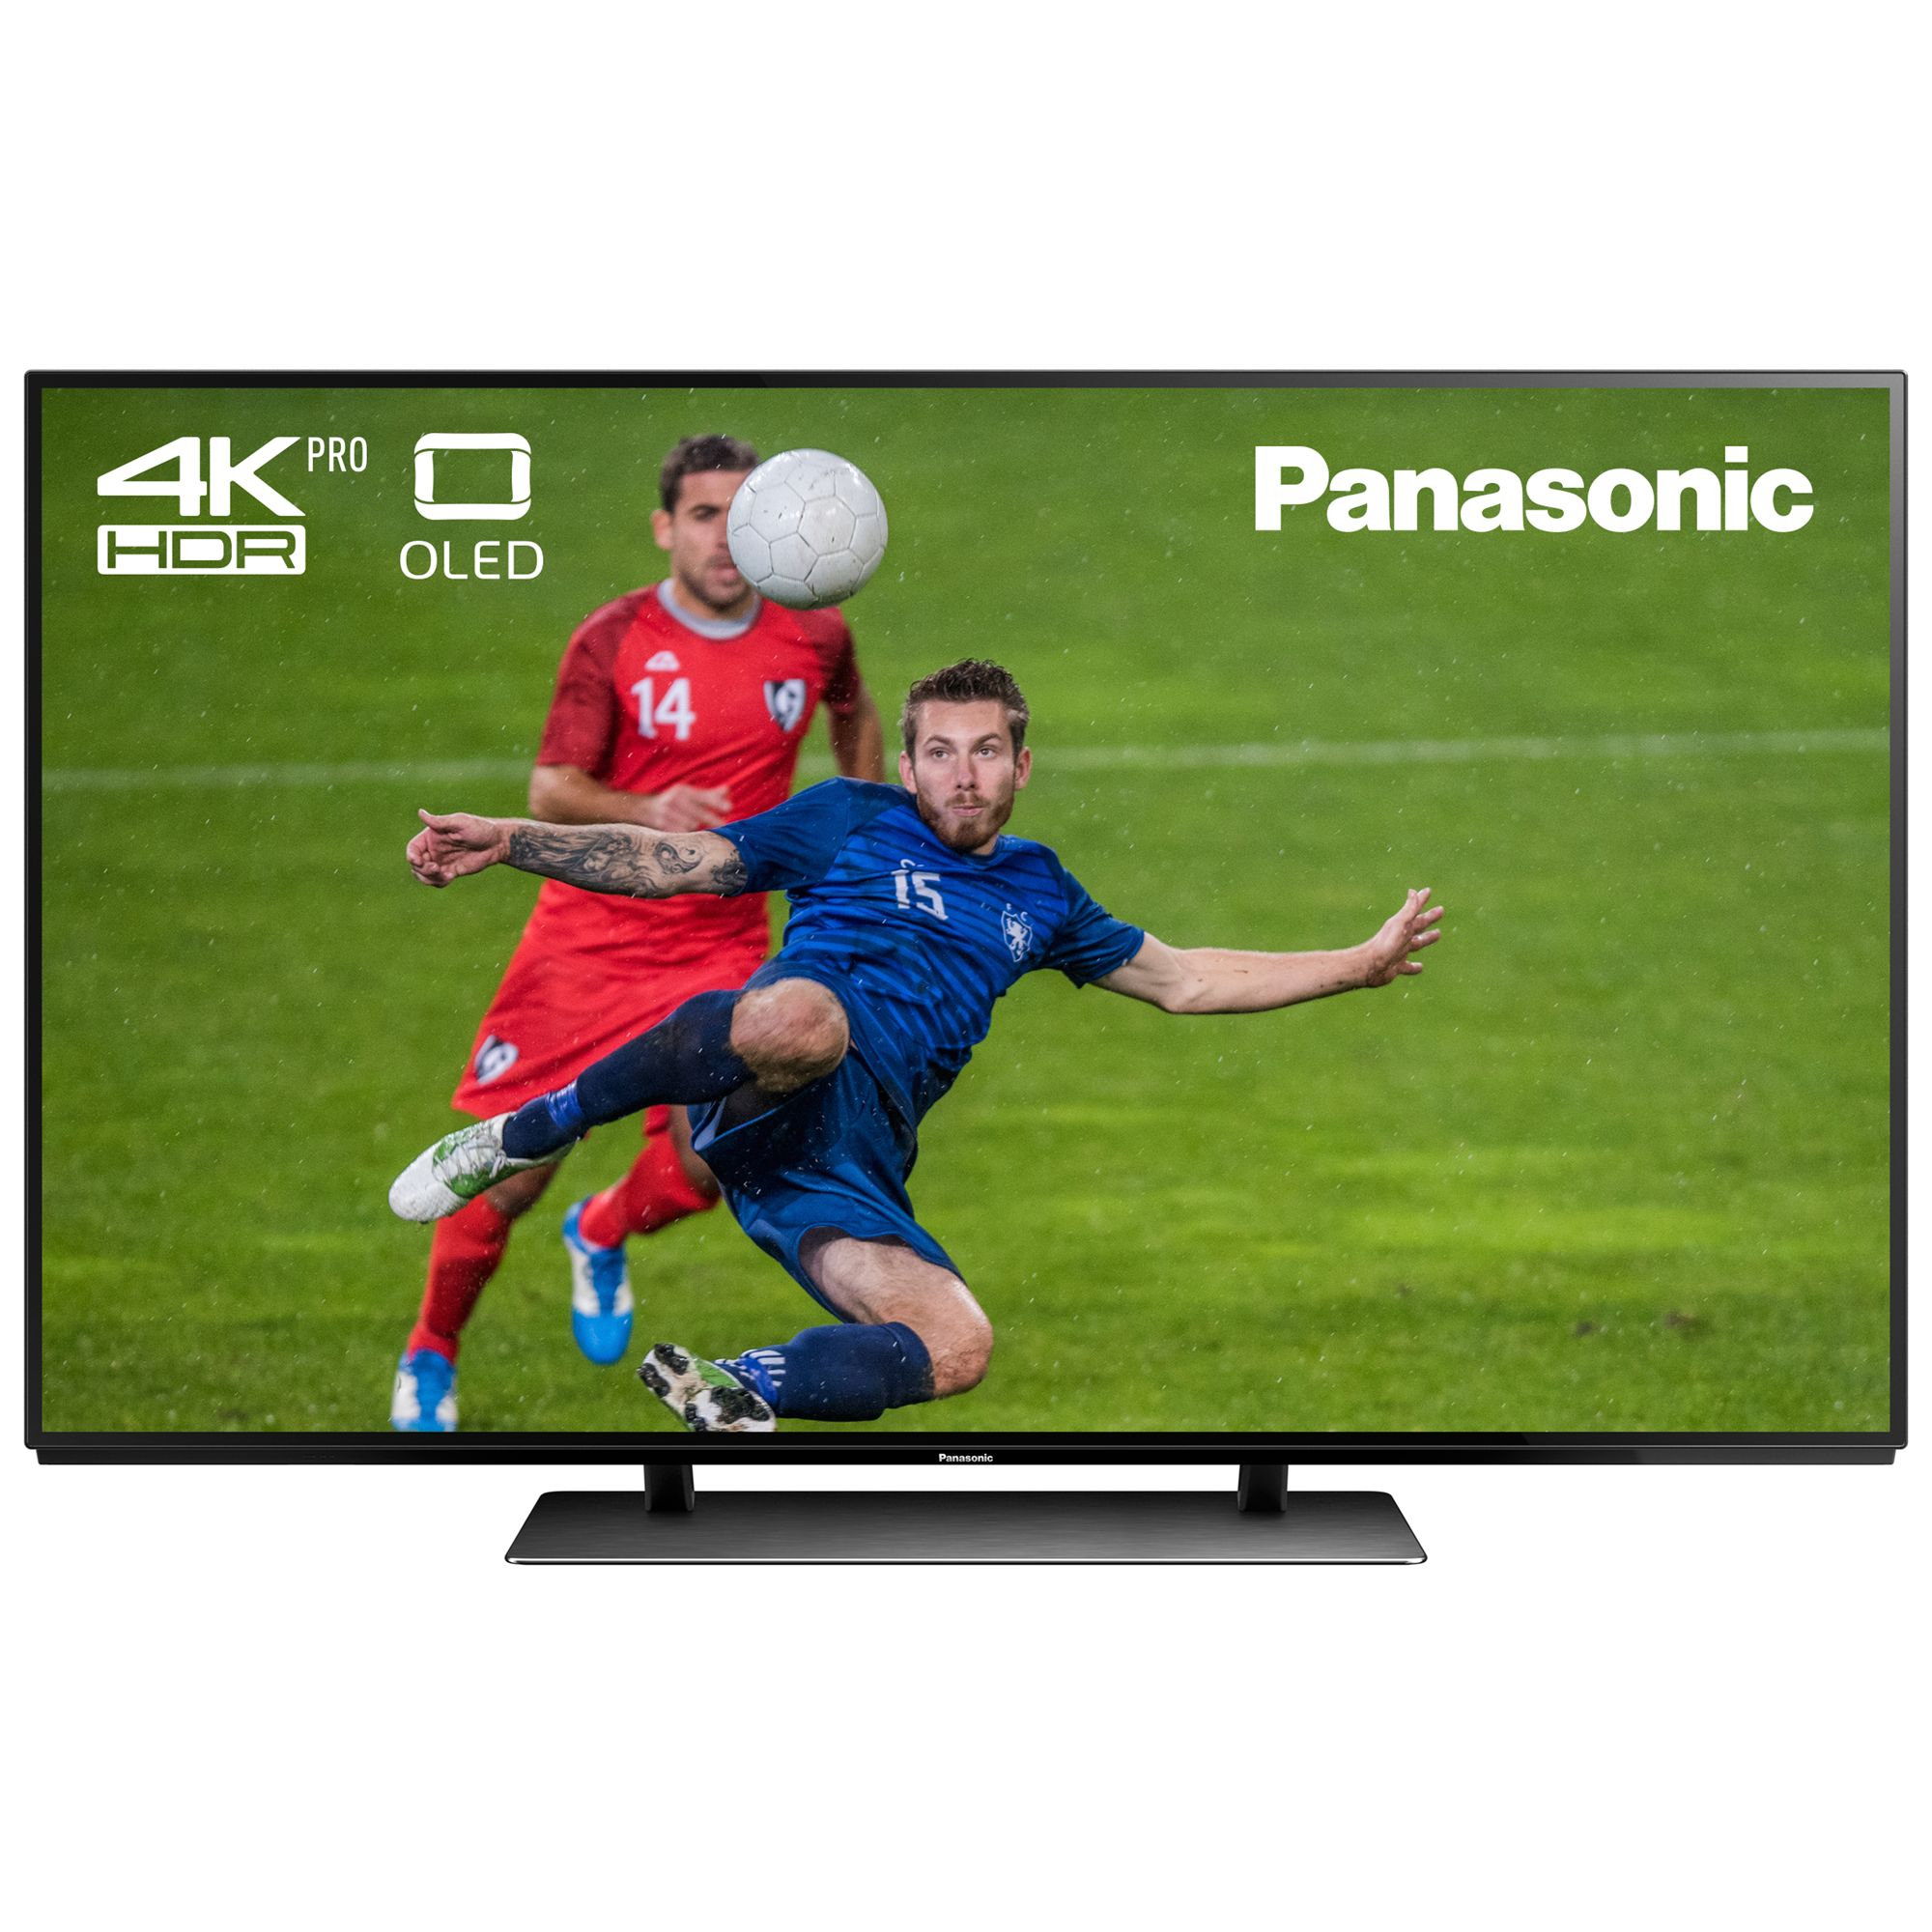 Try These Panasonic 55 4k Oled Ultra Hd Smart Tv Review